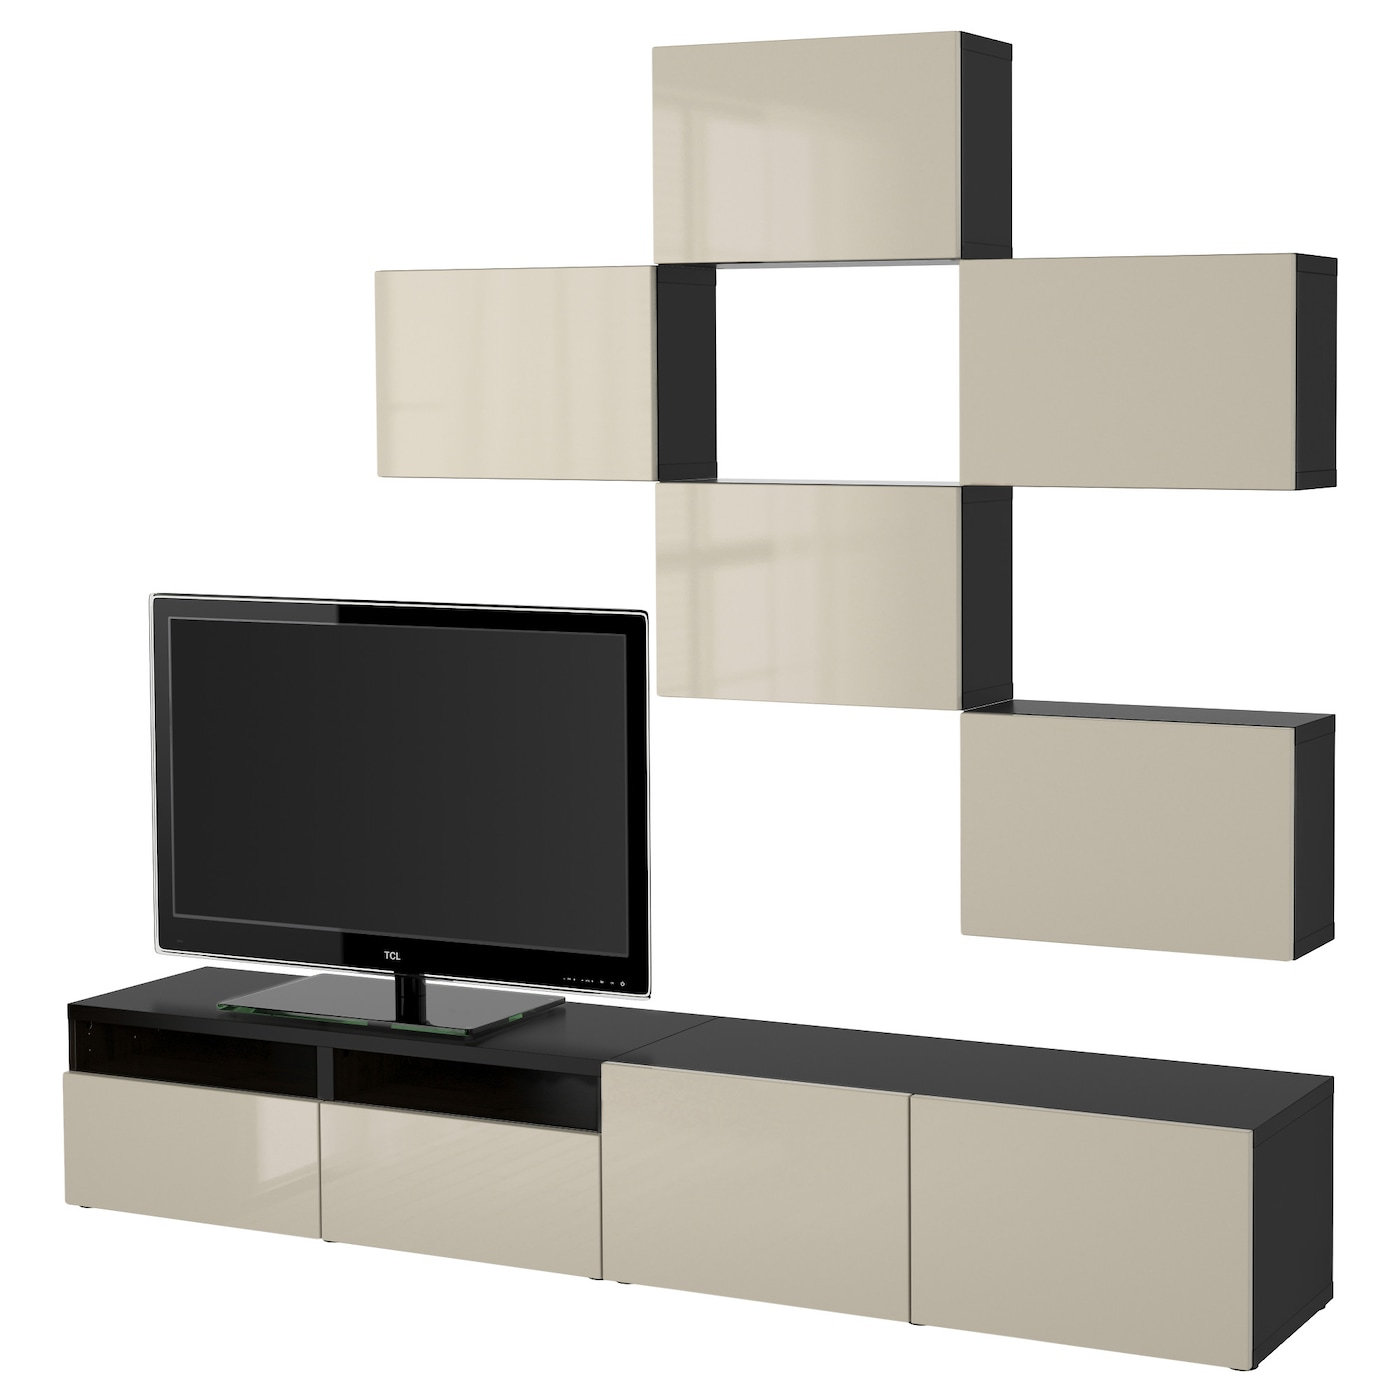 Best Combinaison Meuble Tv Brun Noir Selsviken Brillant Beige  # Meuble Tv A Accrocher Au Mur